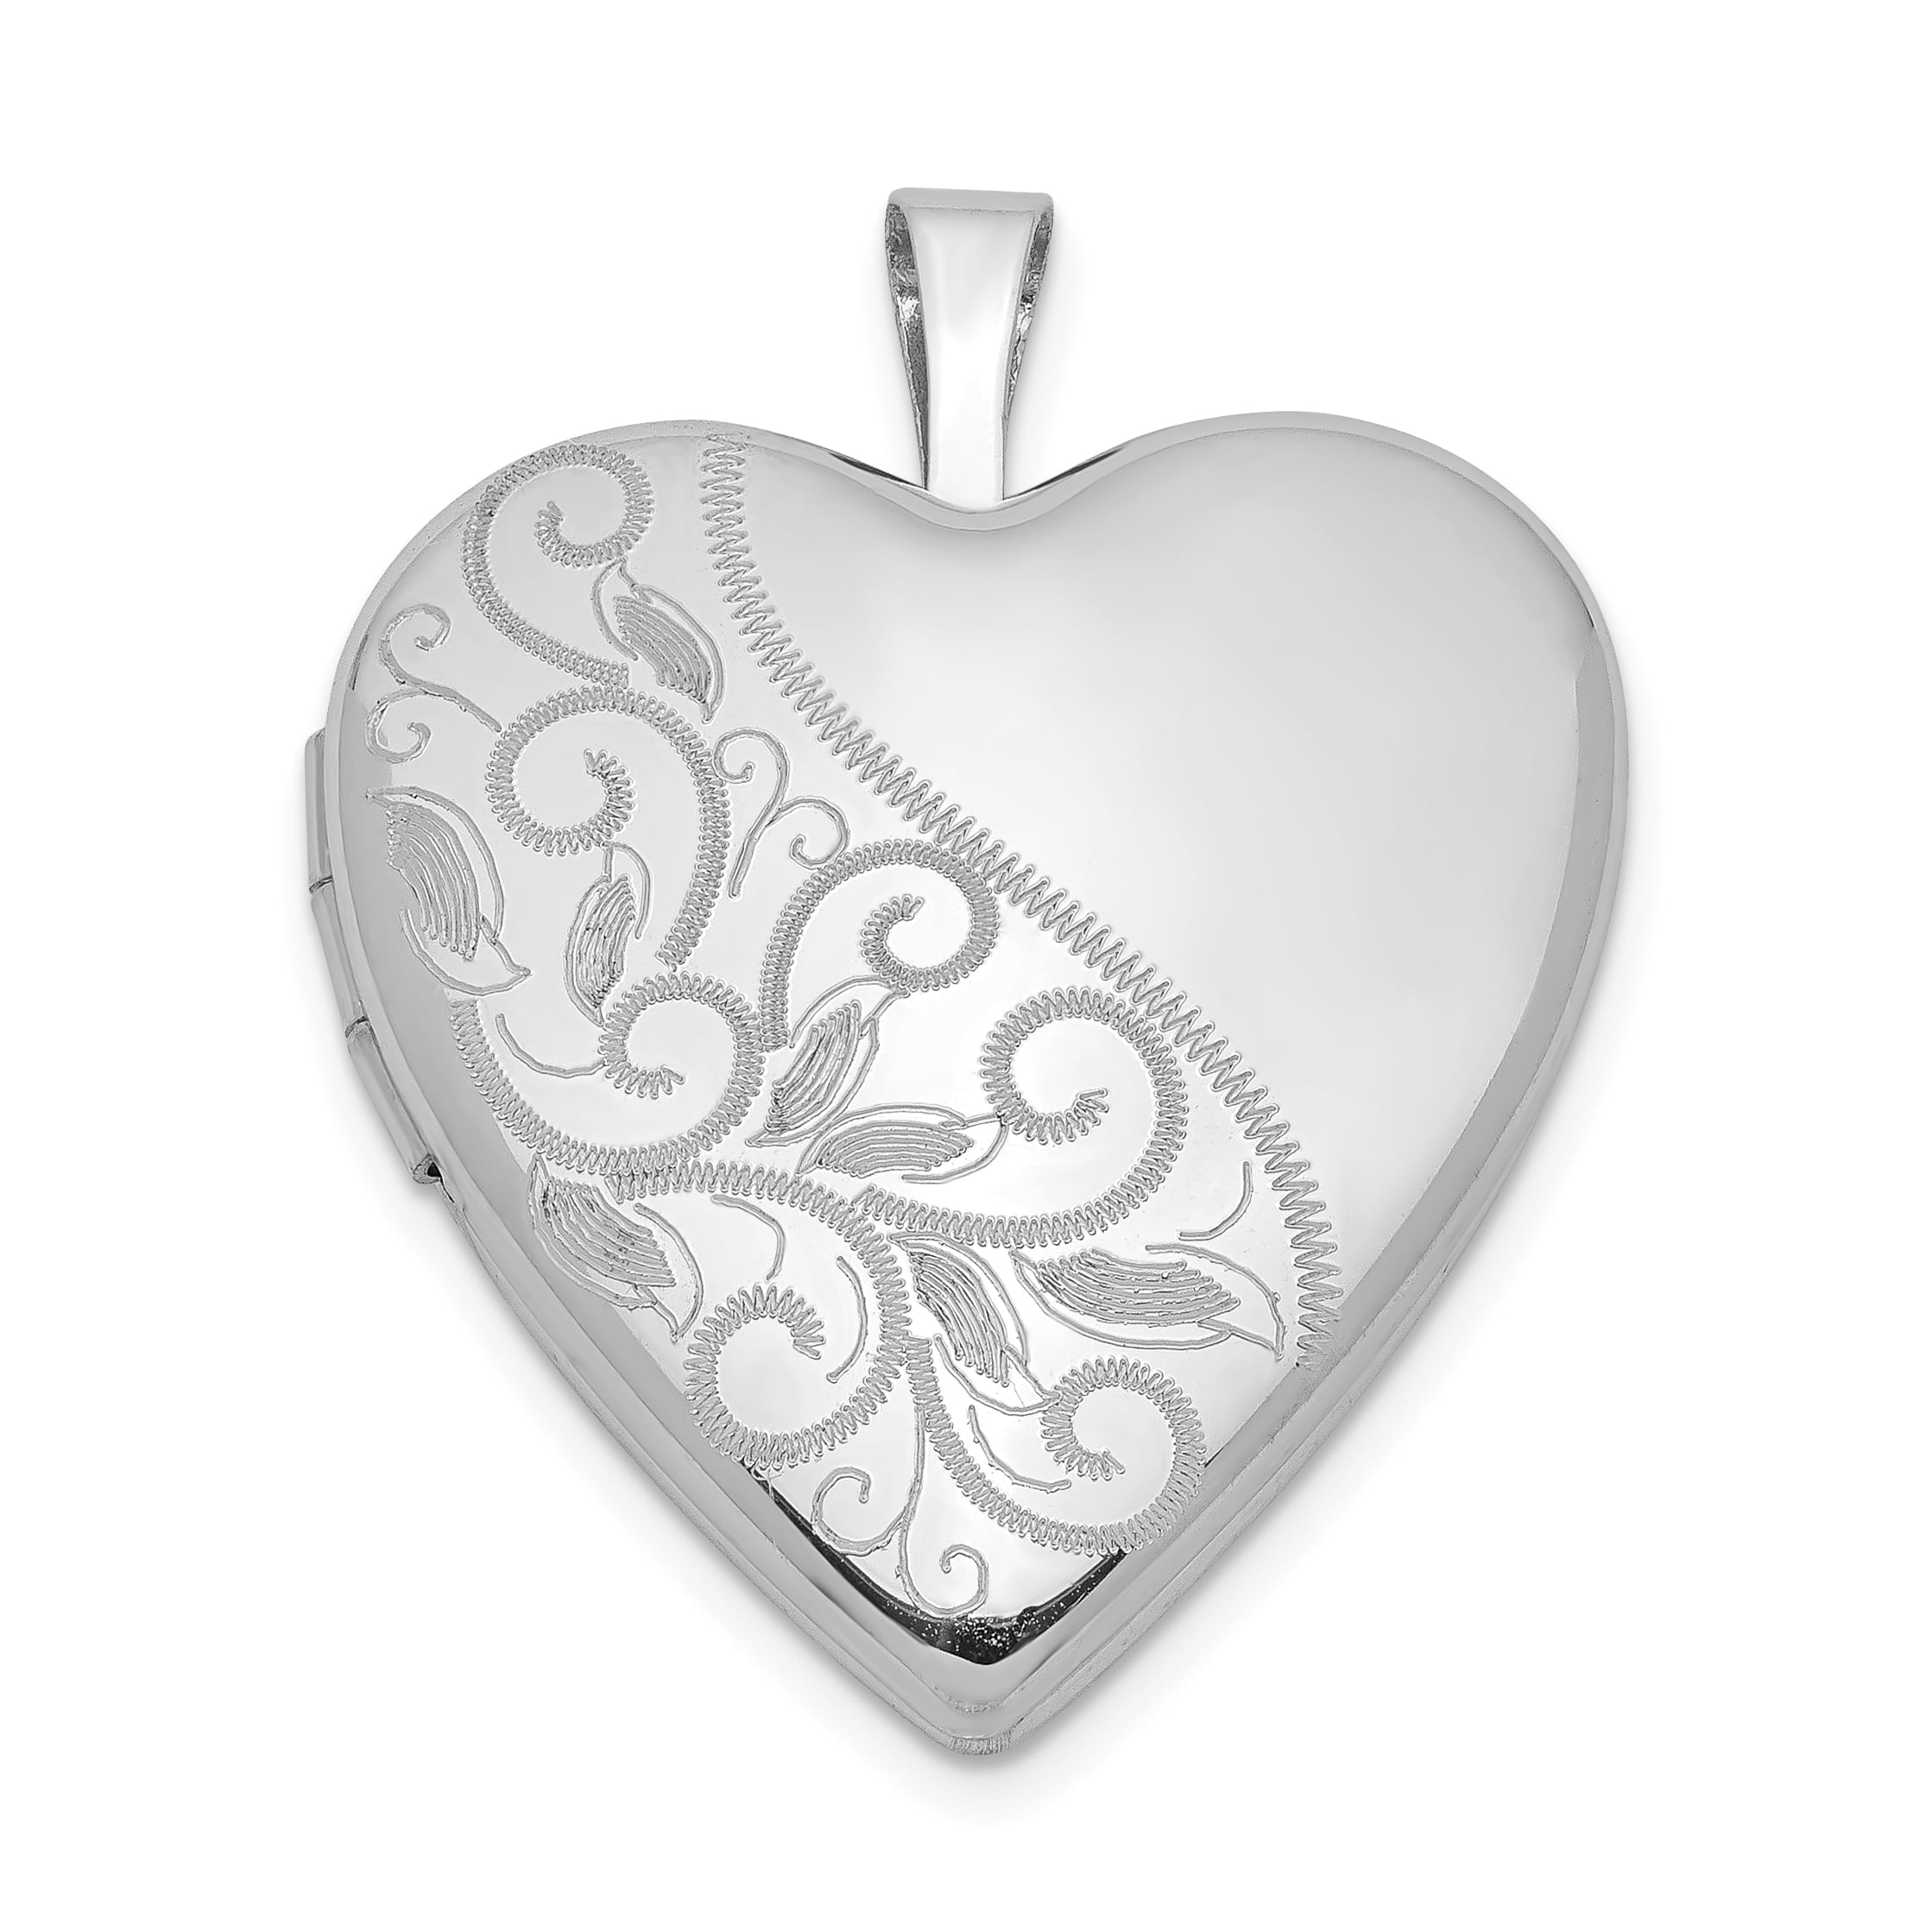 32 mm Jewels Obsession Saying Pendant Sterling Silver 925 Saying Pendant